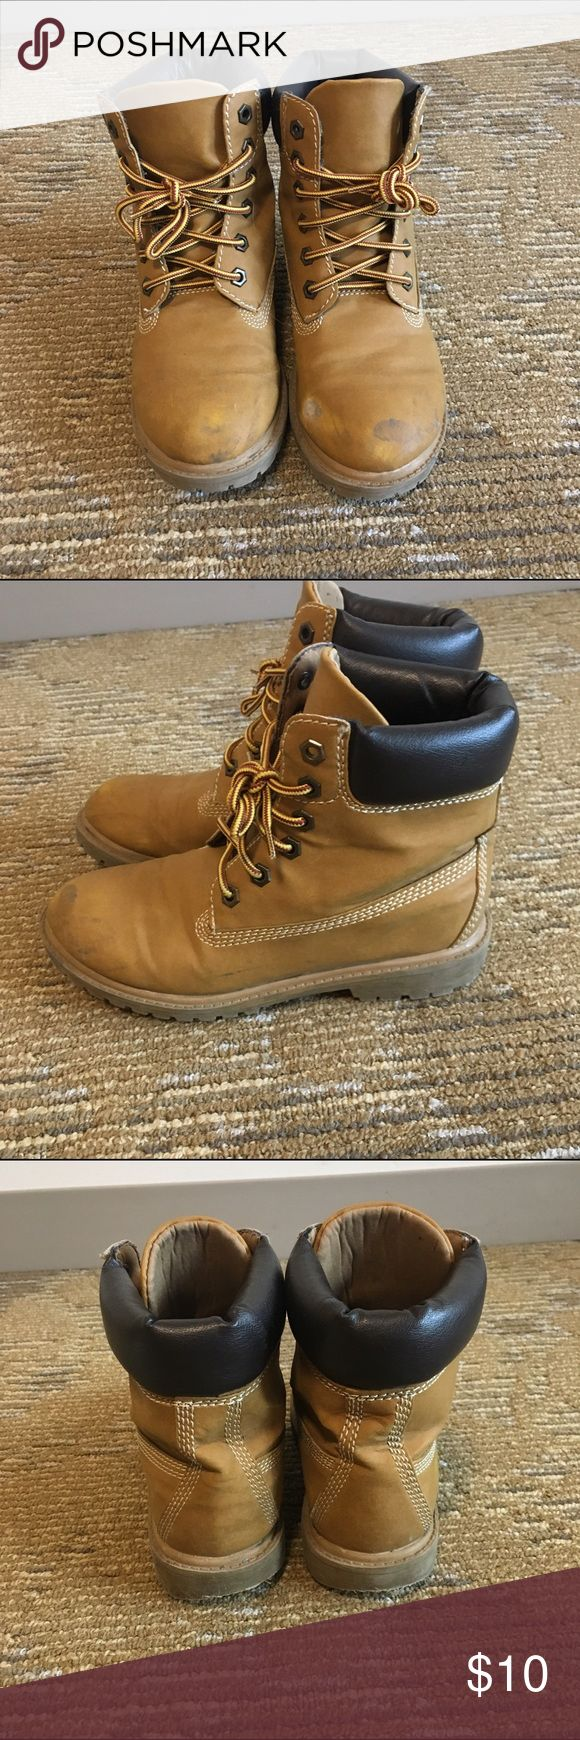 Timberland style boots by ESPIRIT Worn out in the snow and rain which explains the scuffs, but they are very sturdy and also cute to wear! This is technically a size 6, however it runs pretty big. Fits like a 7-7.5 Shoes Combat & Moto Boots